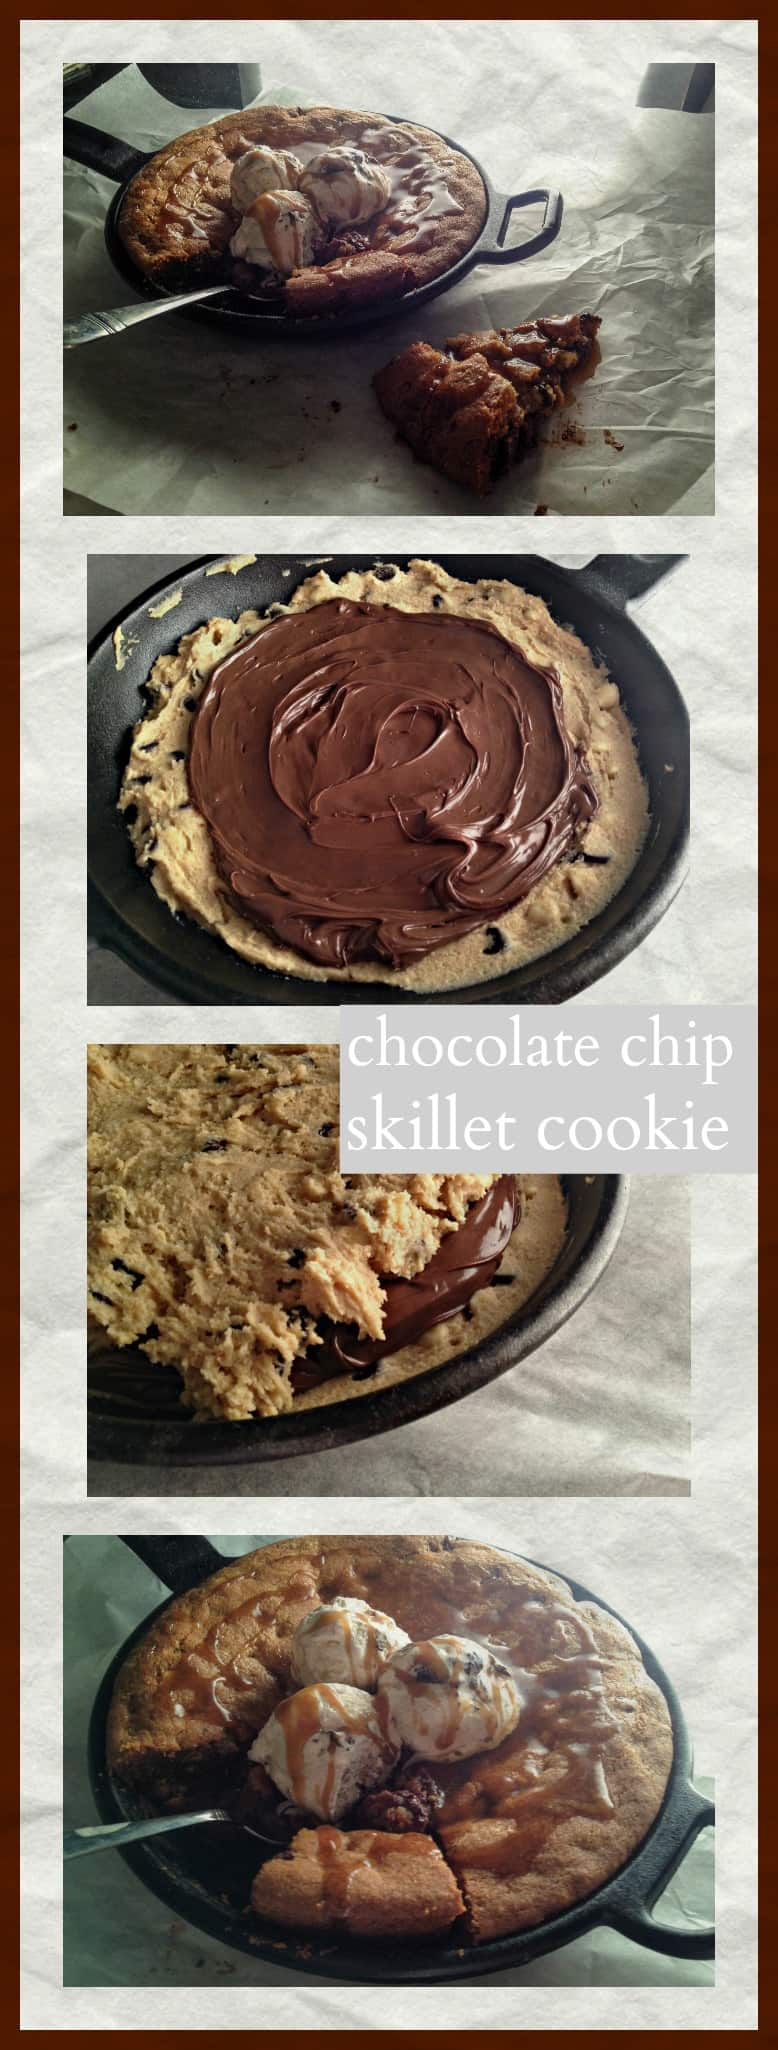 A Chocolate Chip Skillet Cookie stuffed with Nutella? Heck yeah! I'm all about any kind of chocolate chip cookie and these cookie recipes are really popular right now and why not? What an awesome idea, a huge chocolate chip cookie, smothered in ice cream and every kind of chocolate sauce and butterscotch sauce - heavenly right?